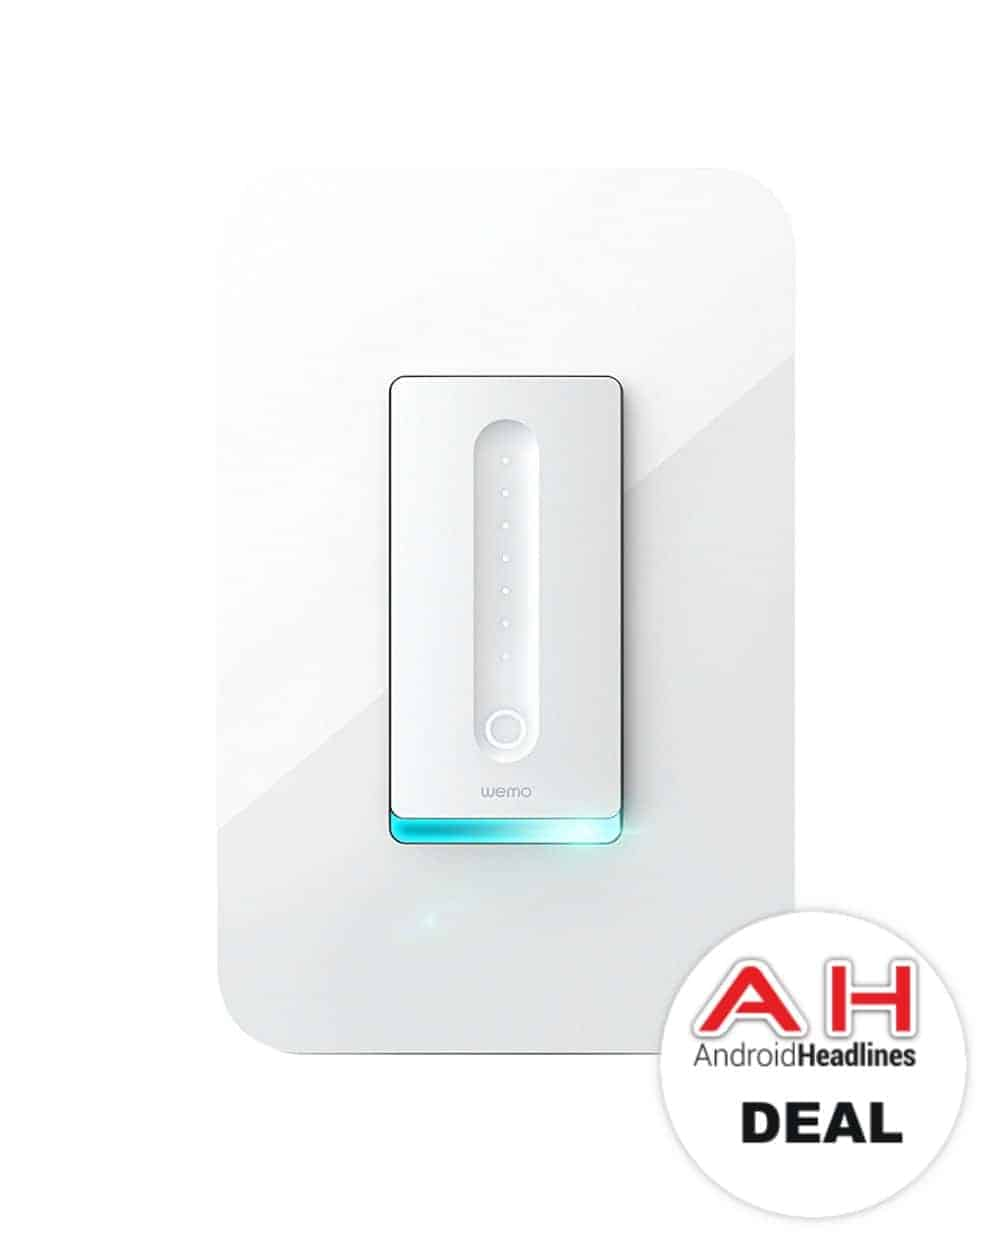 Deal: Wemo Dimmer Wi-Fi Light Switch for $49 - 11/23/17 ...